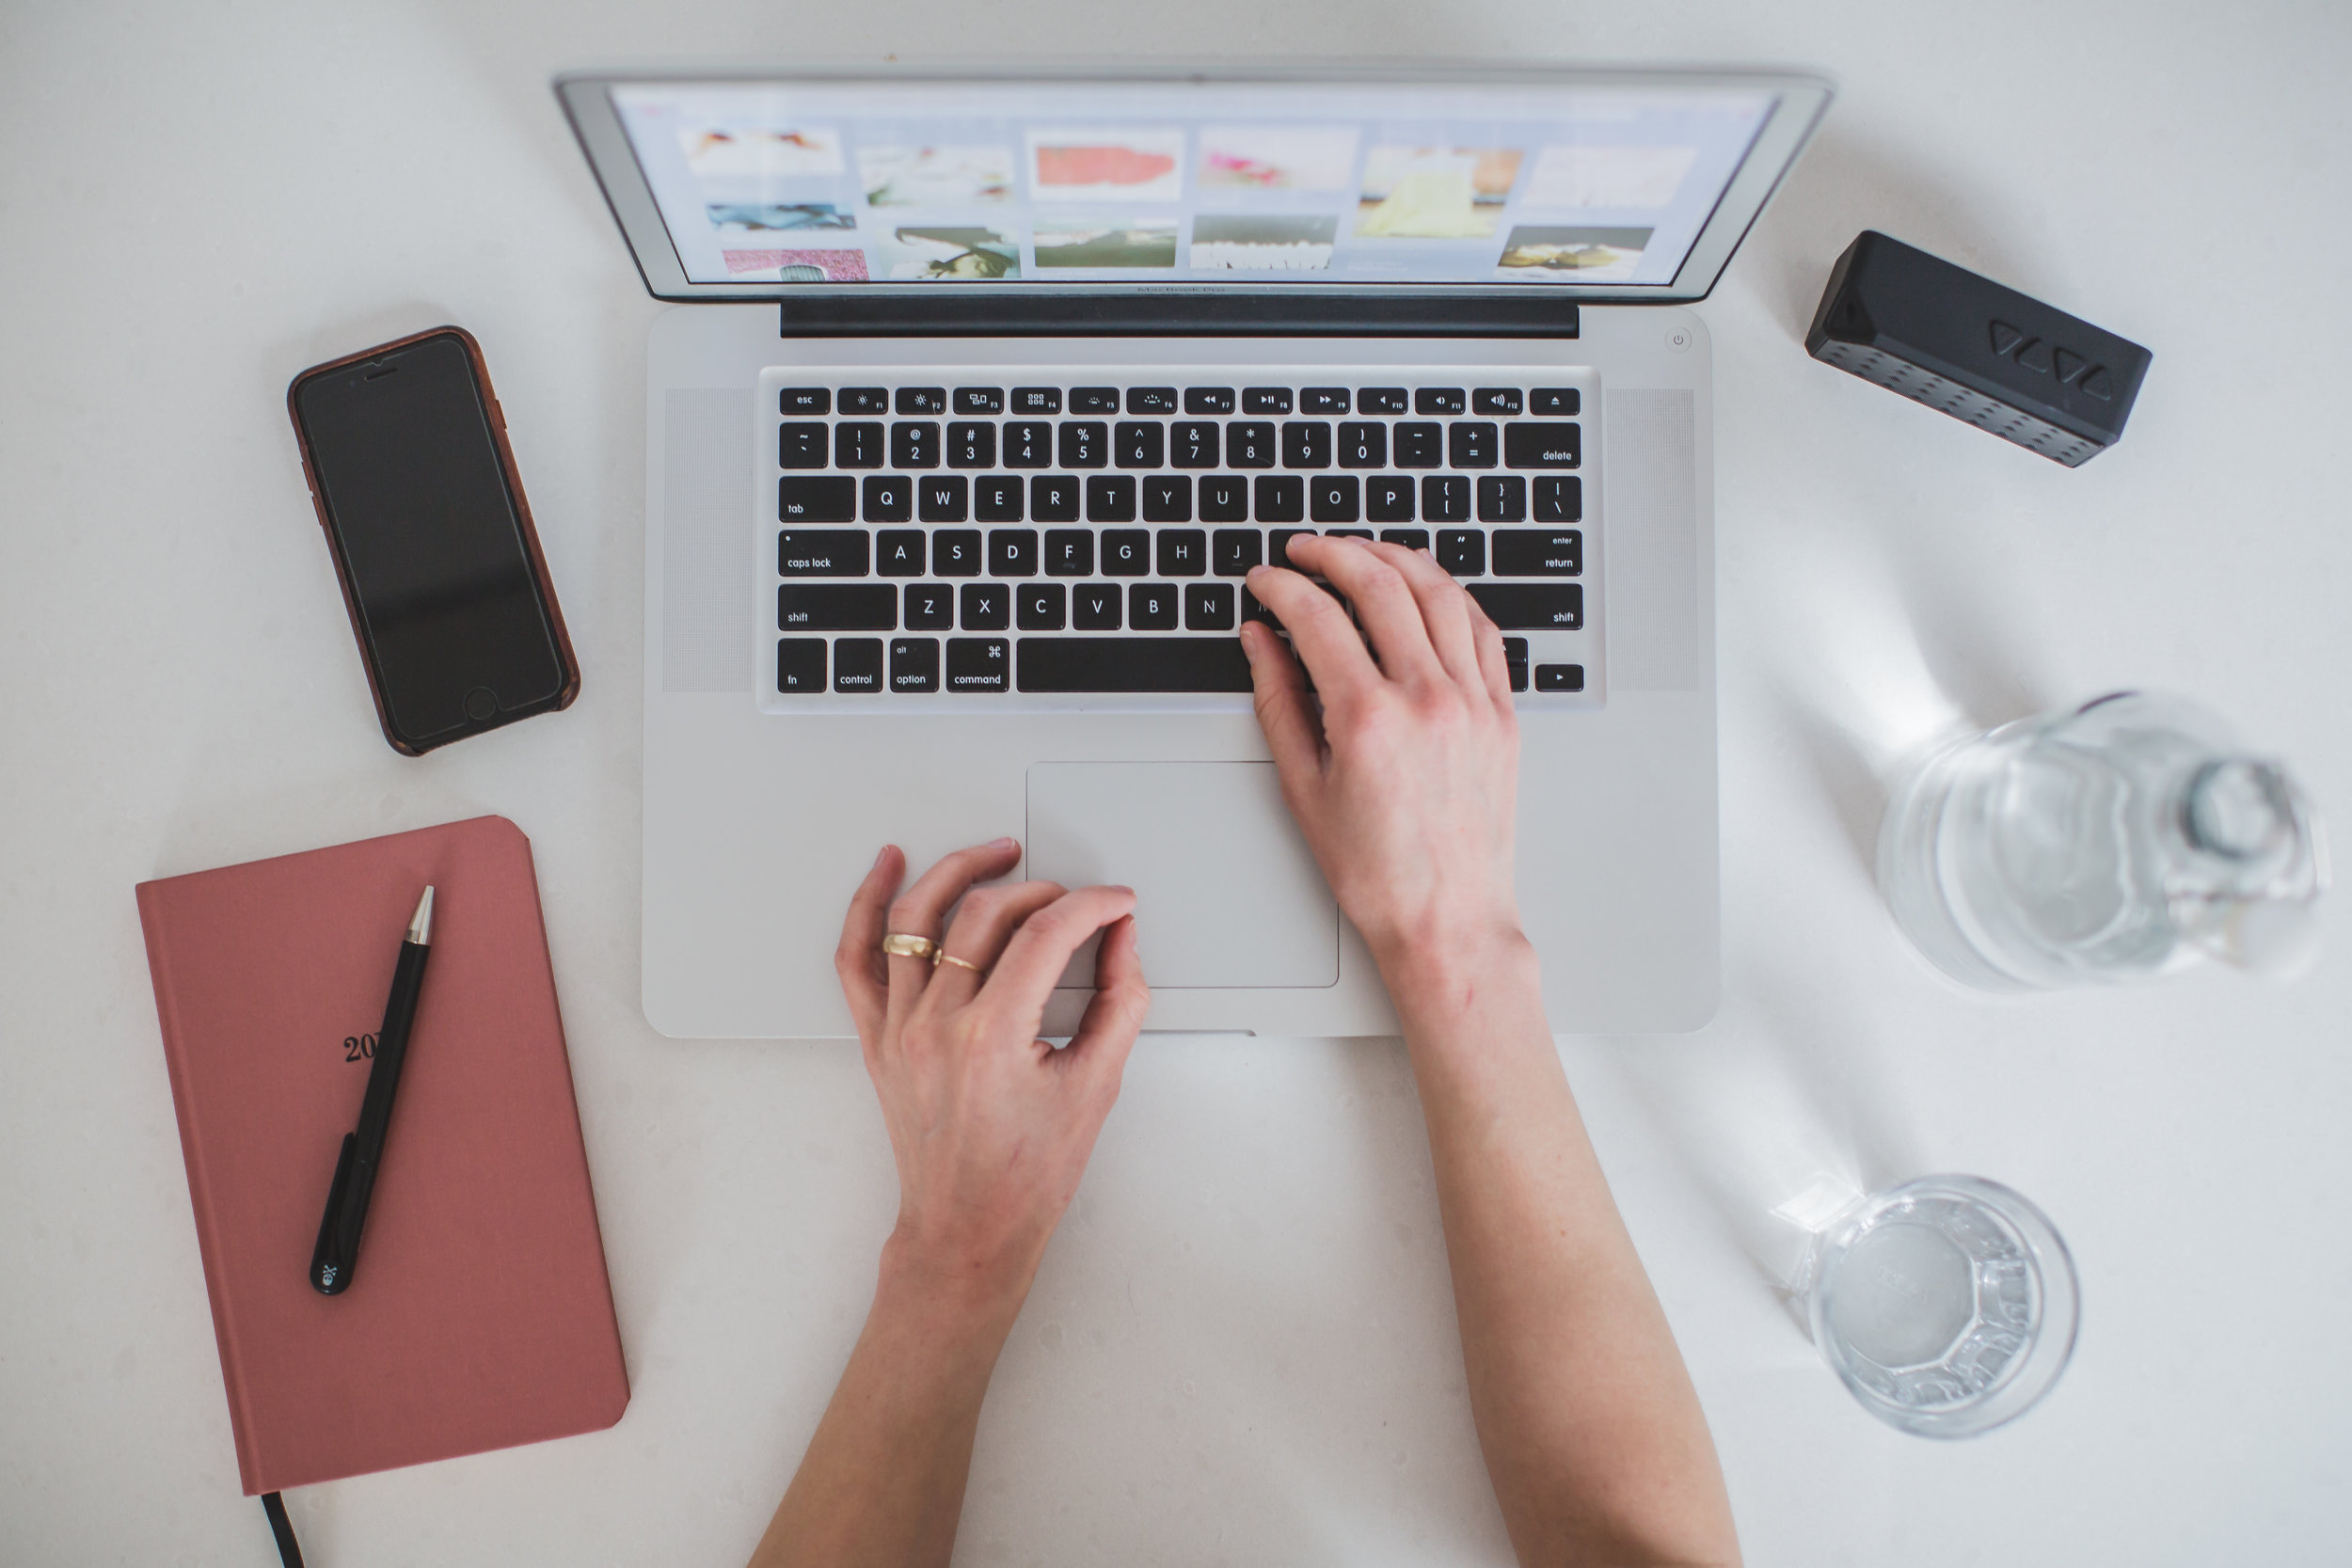 macbook smartphone 1.jpeg